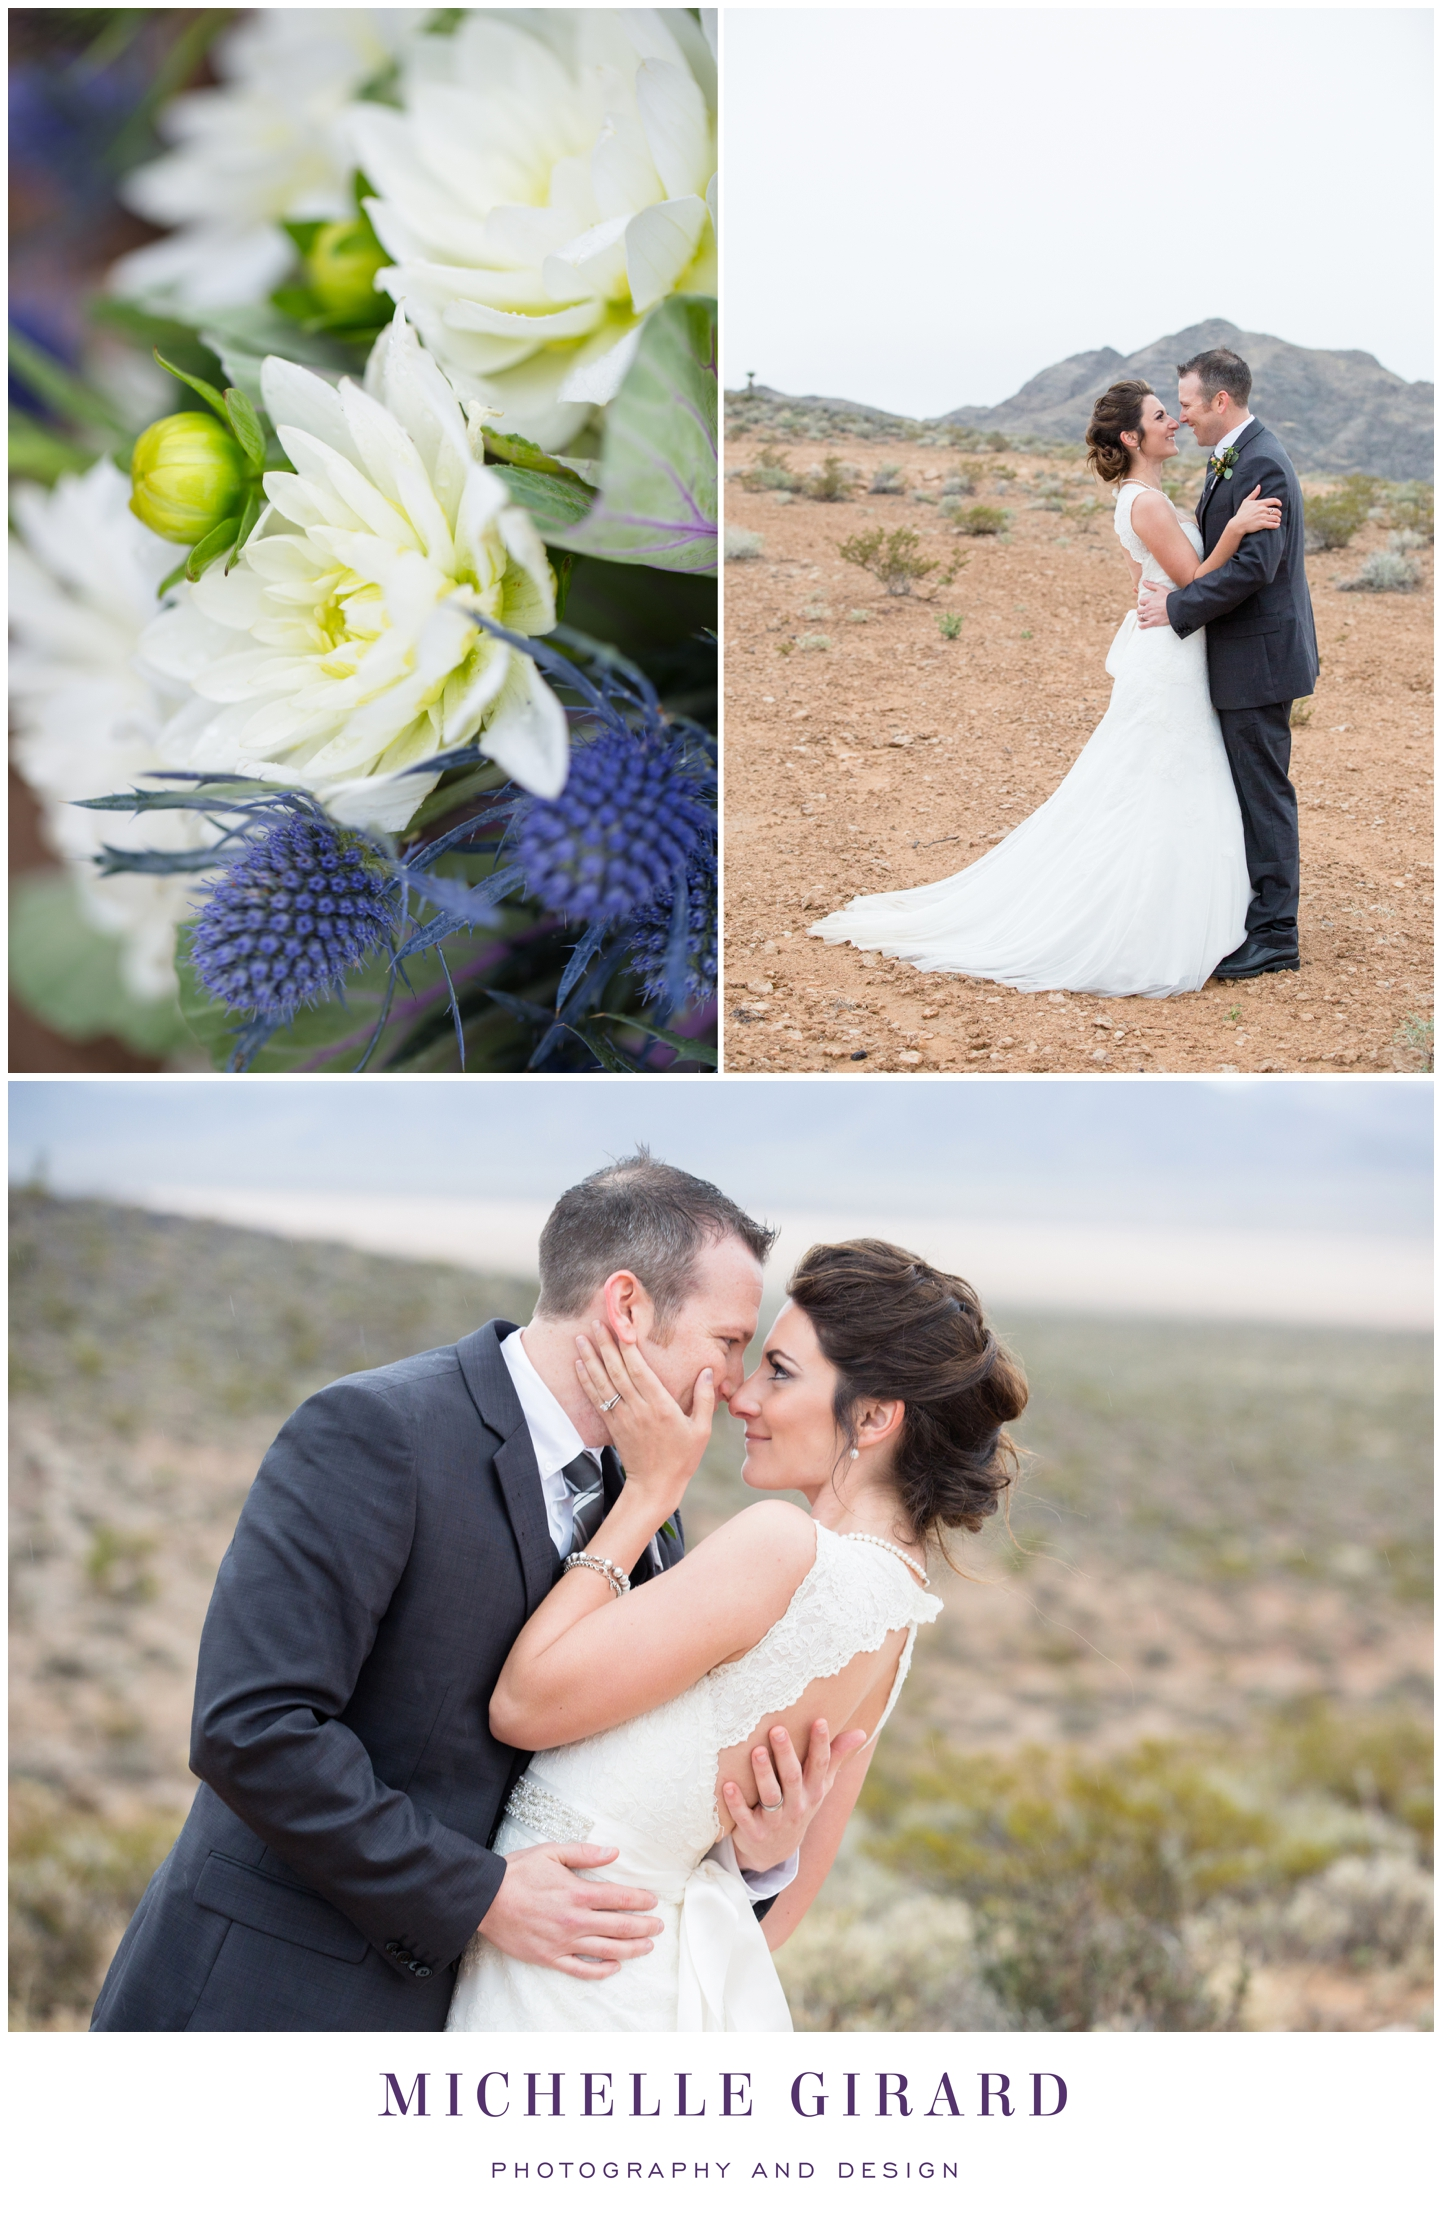 las-vegas-desert-wedding-bride-groom-photography-nevada-michelle-girard-10.jpg